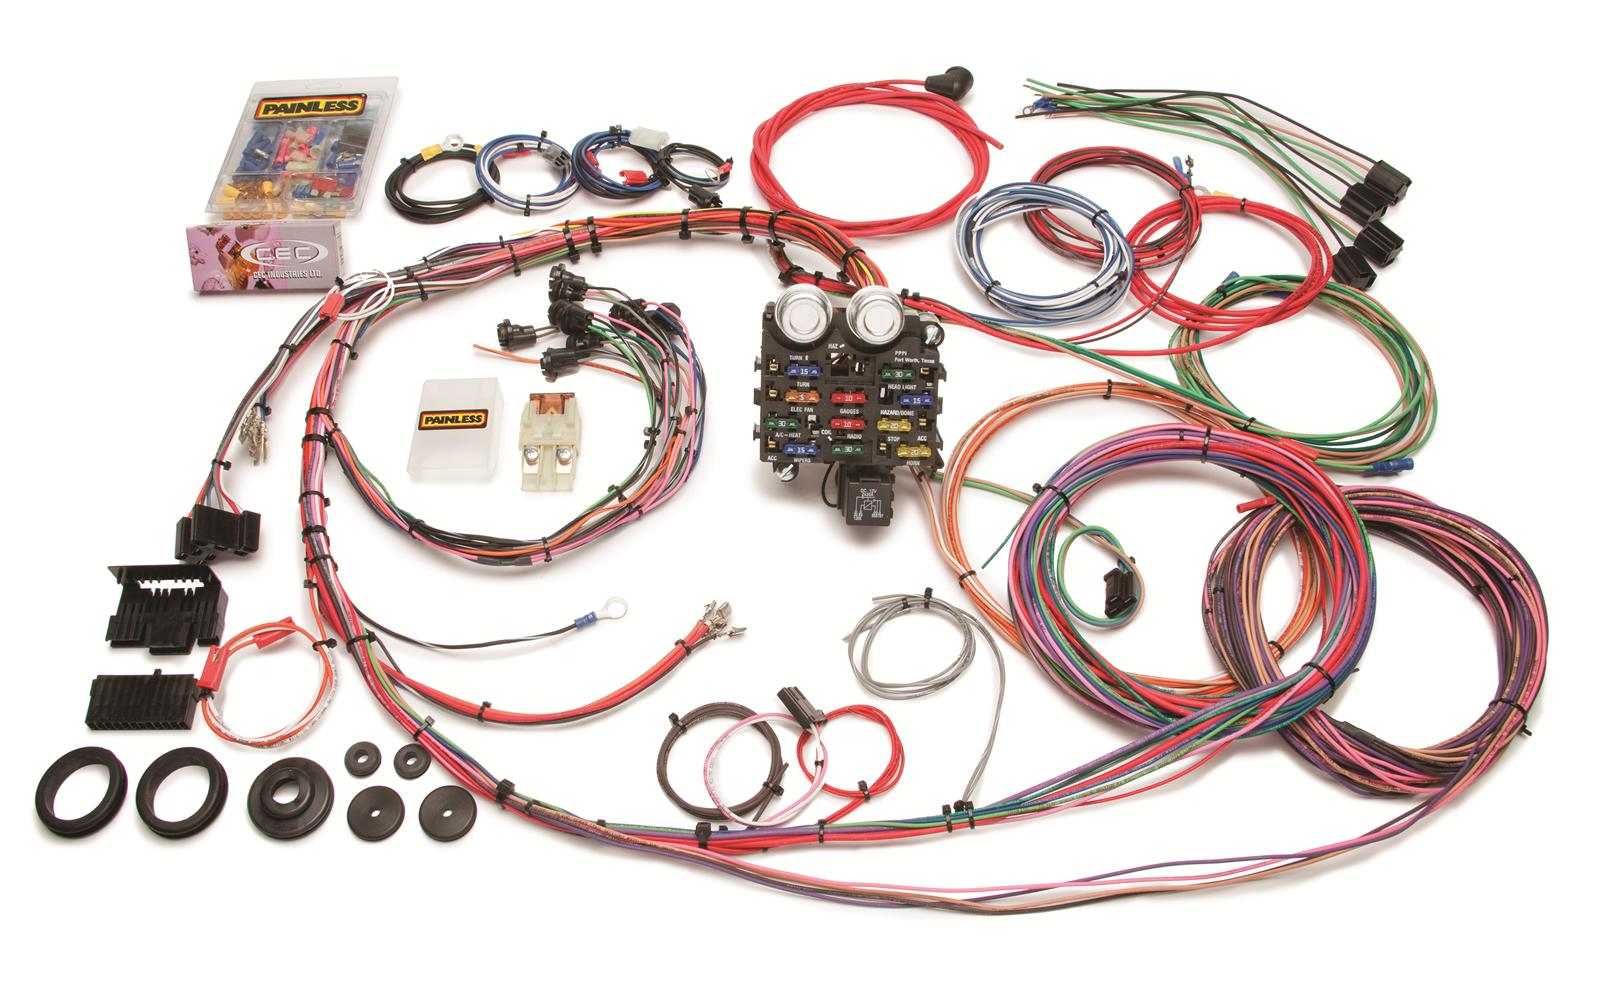 painless wiring 10112 wiring harness 12 circuit dash